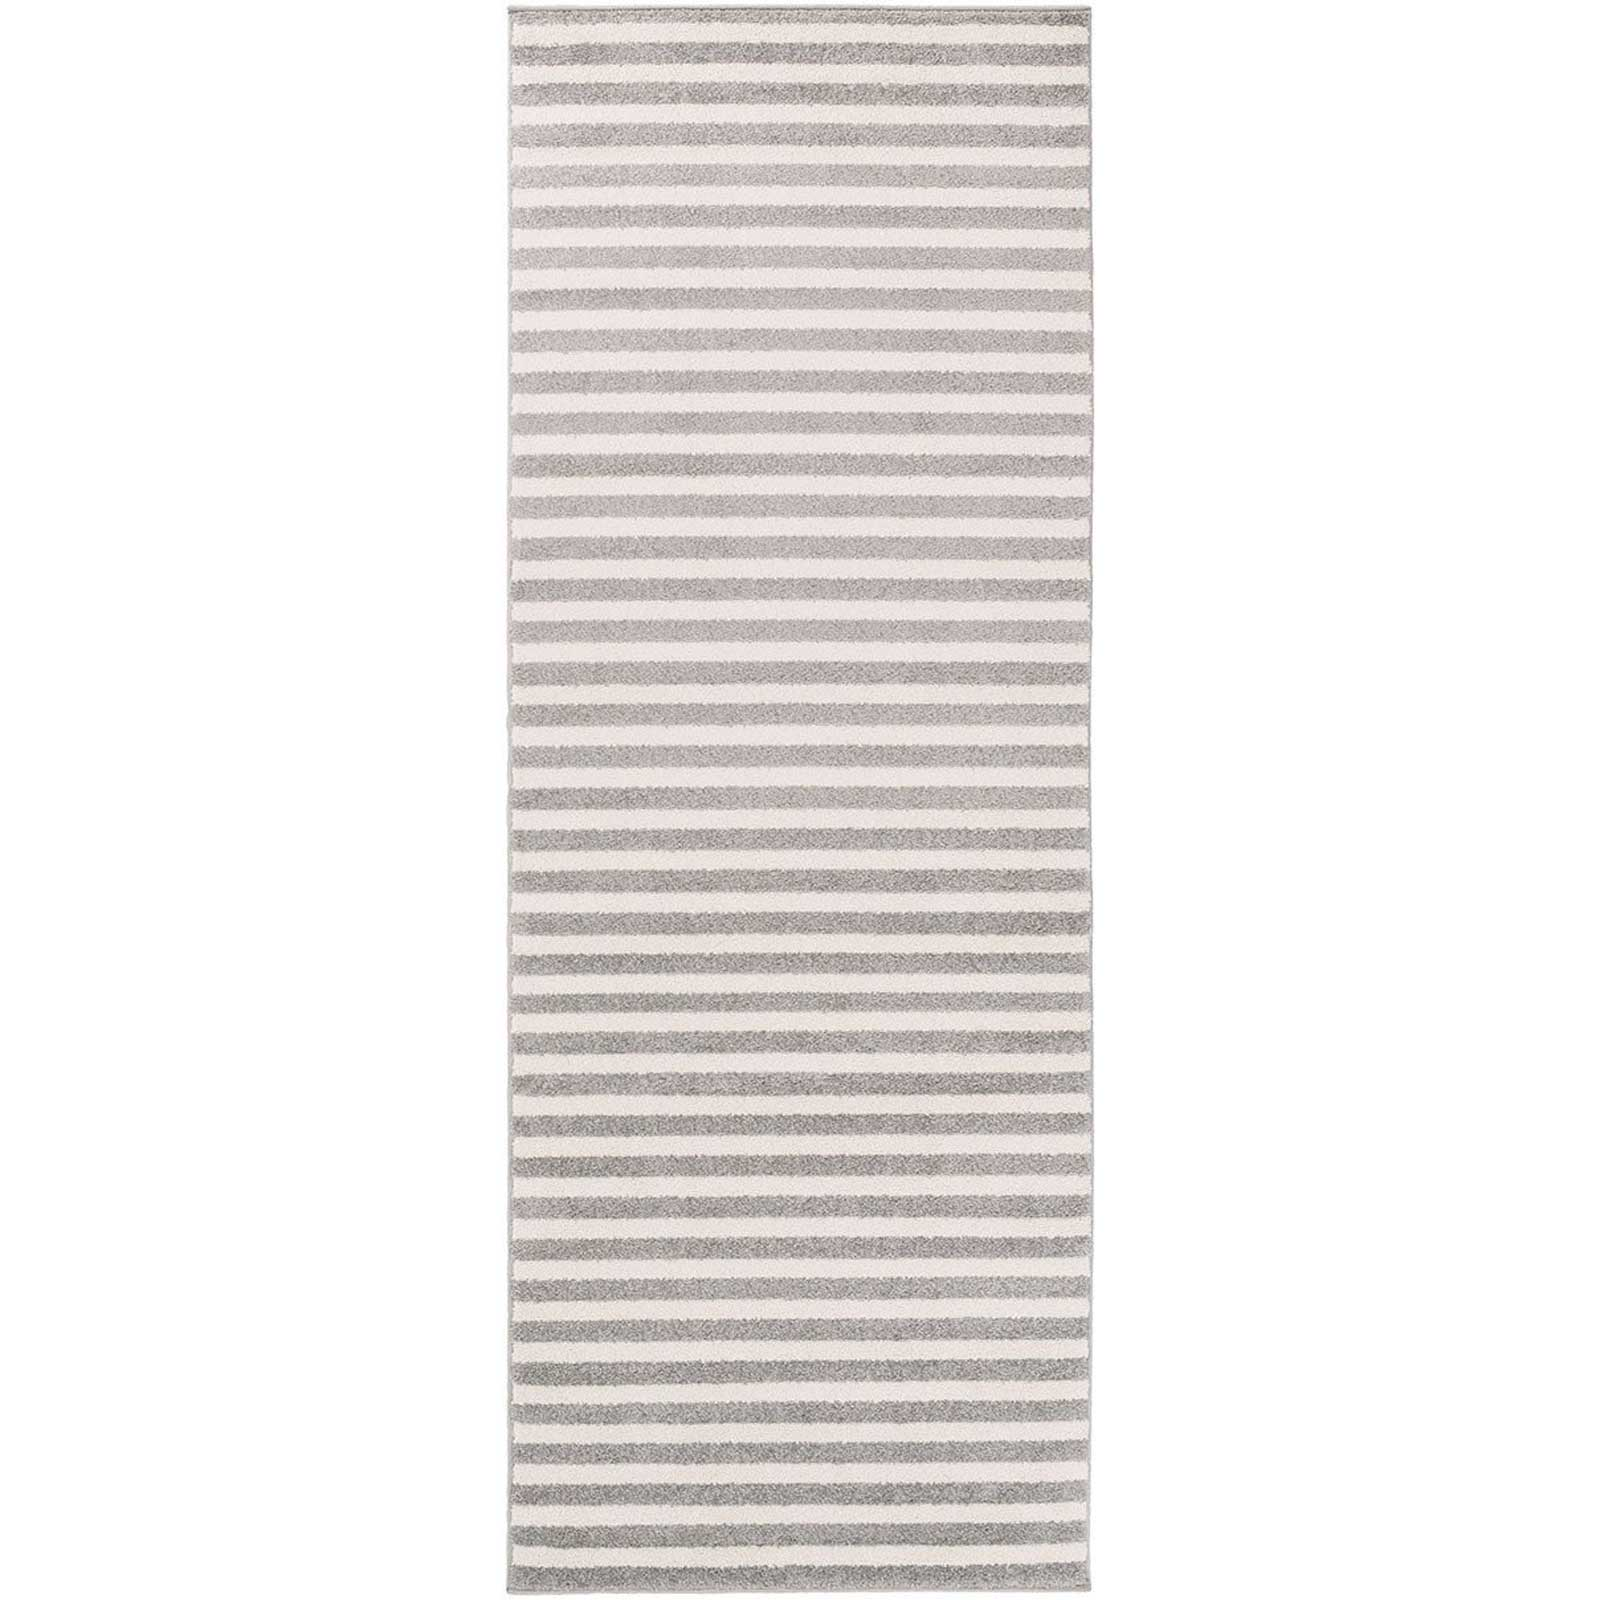 Horizon Lines Ivory/Charcoal Runner Rug